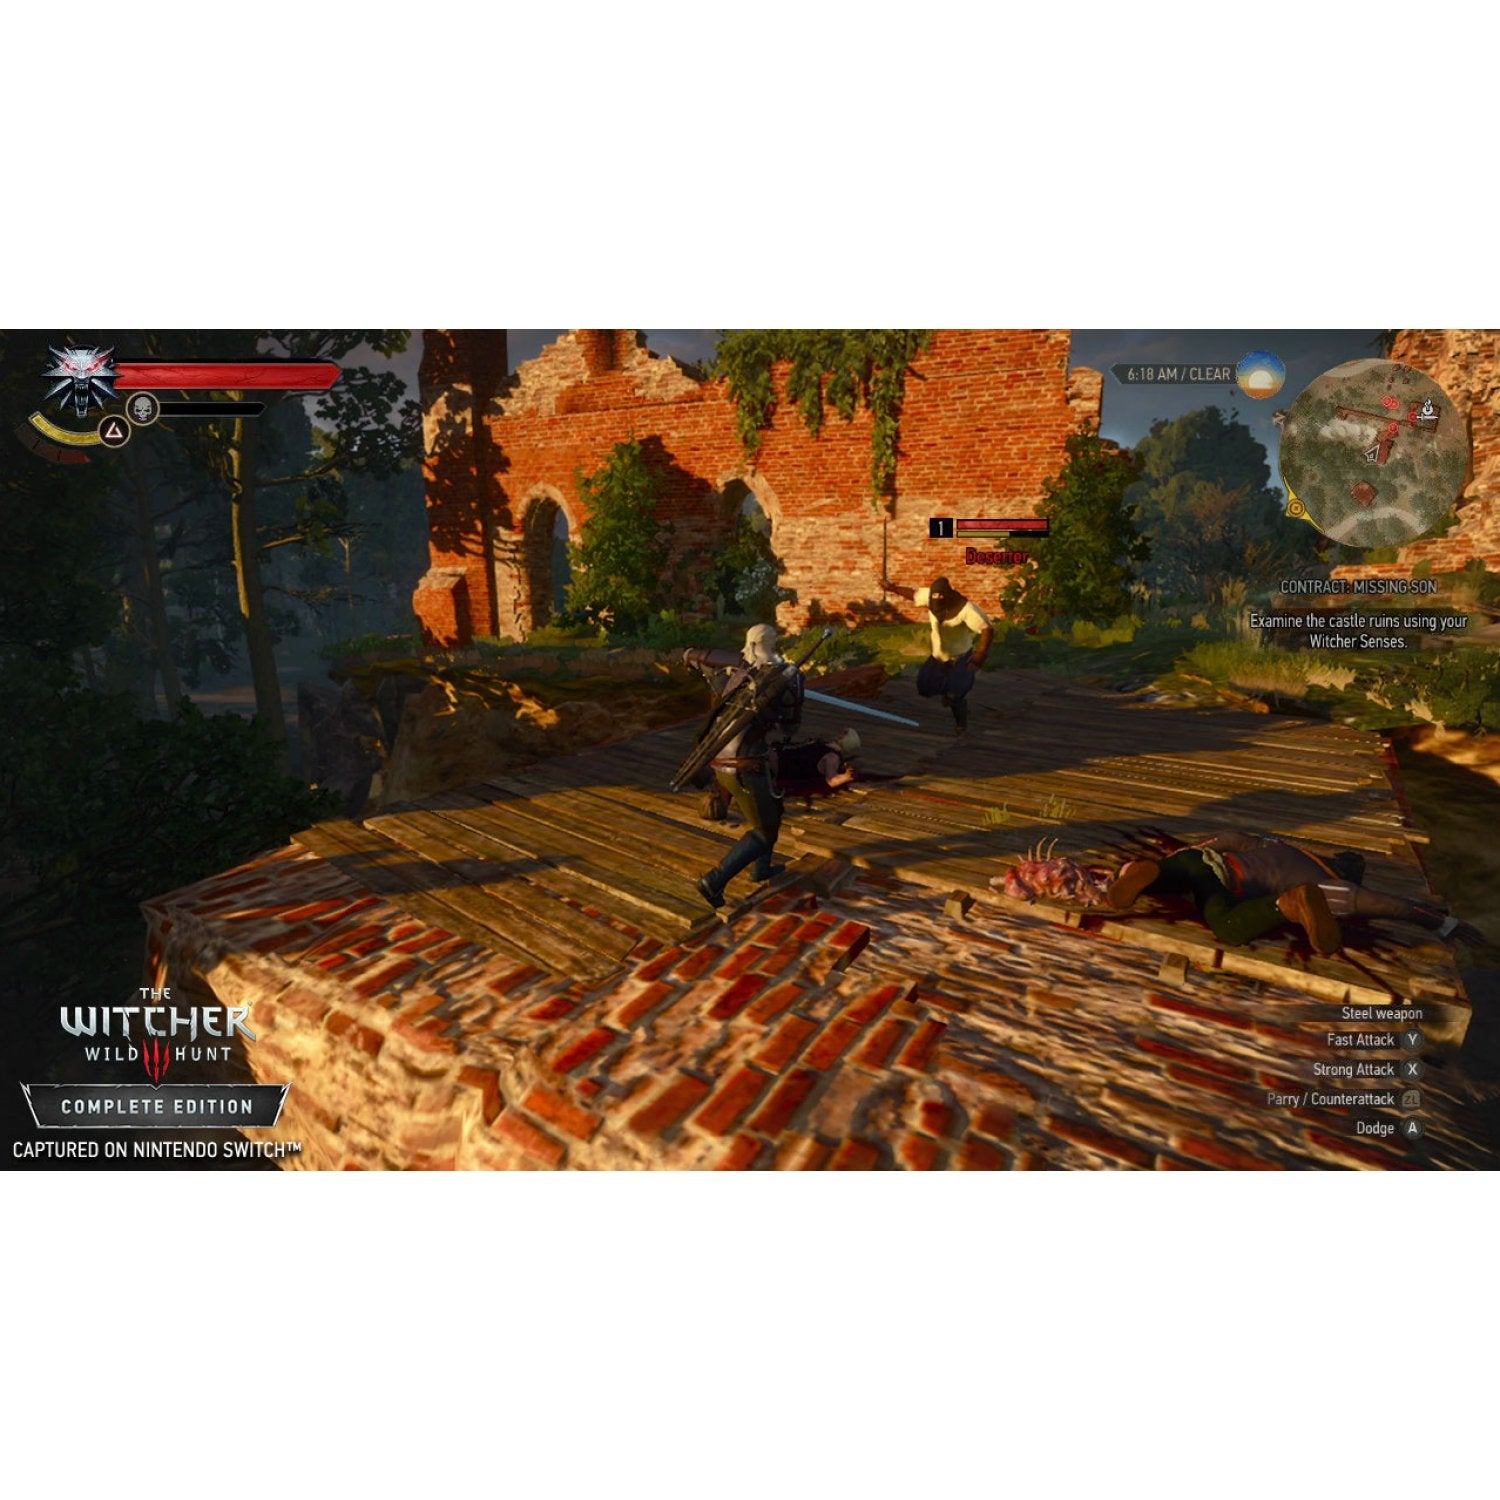 NSW The Witcher 3: Wild Hunt [Complete Edition]